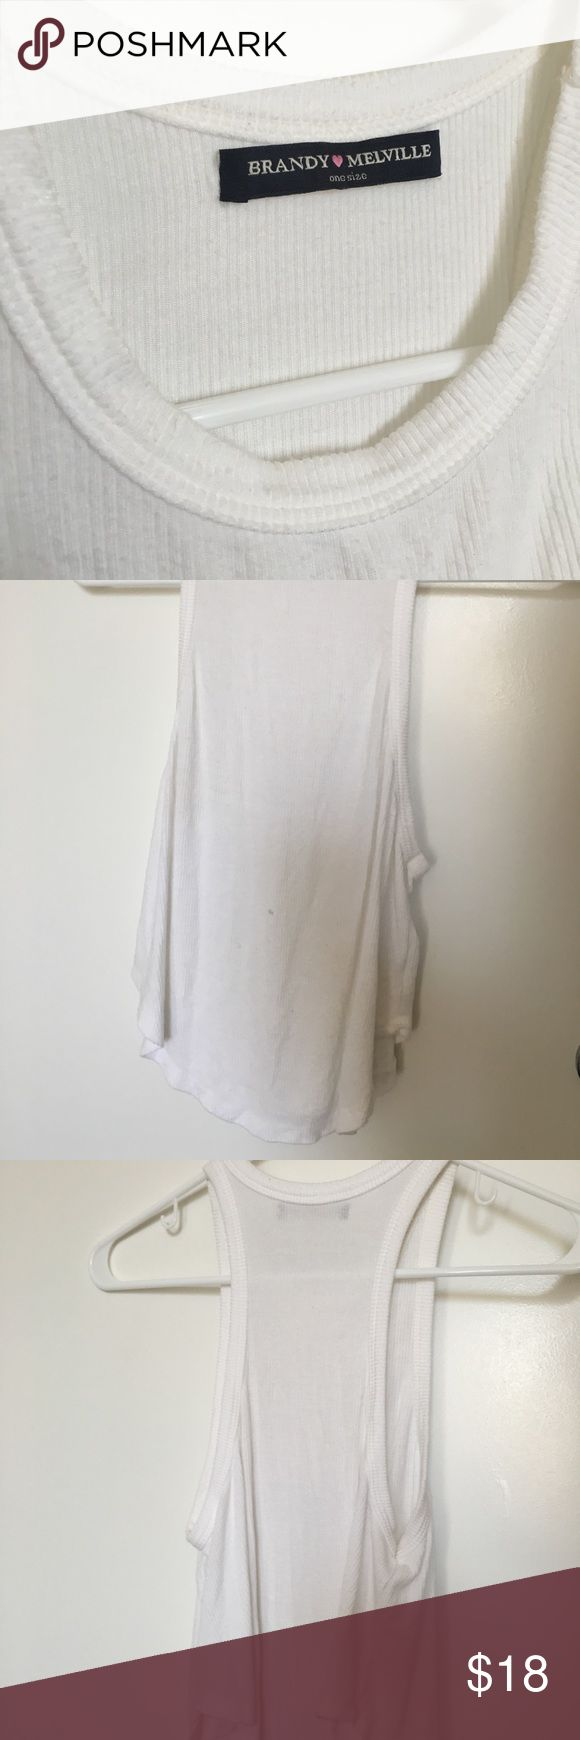 brandy white flowy tank super cute white brandy Melville tank! Only worn a few times, like brand new! Discontinued tank not available online anymore, small mark on the front but removable & will be removed before mailed :) Brandy Melville Tops